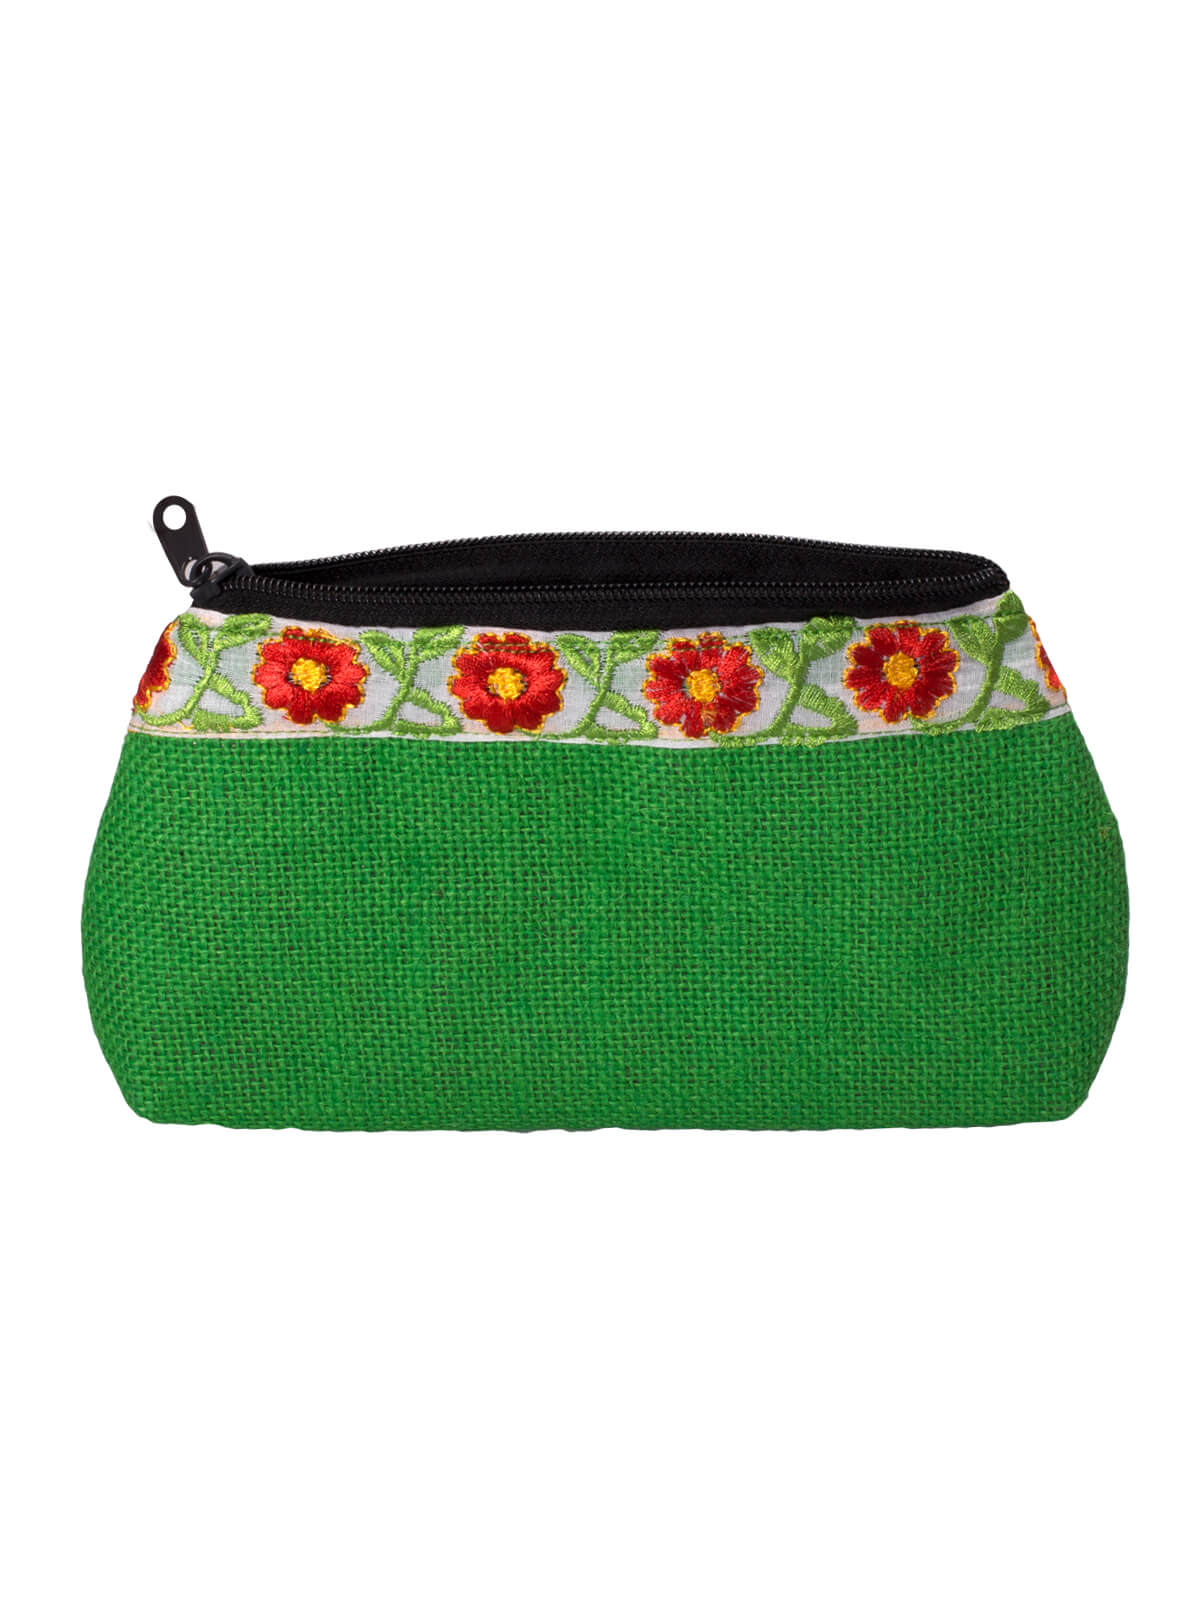 Green Jute Ladies Purse